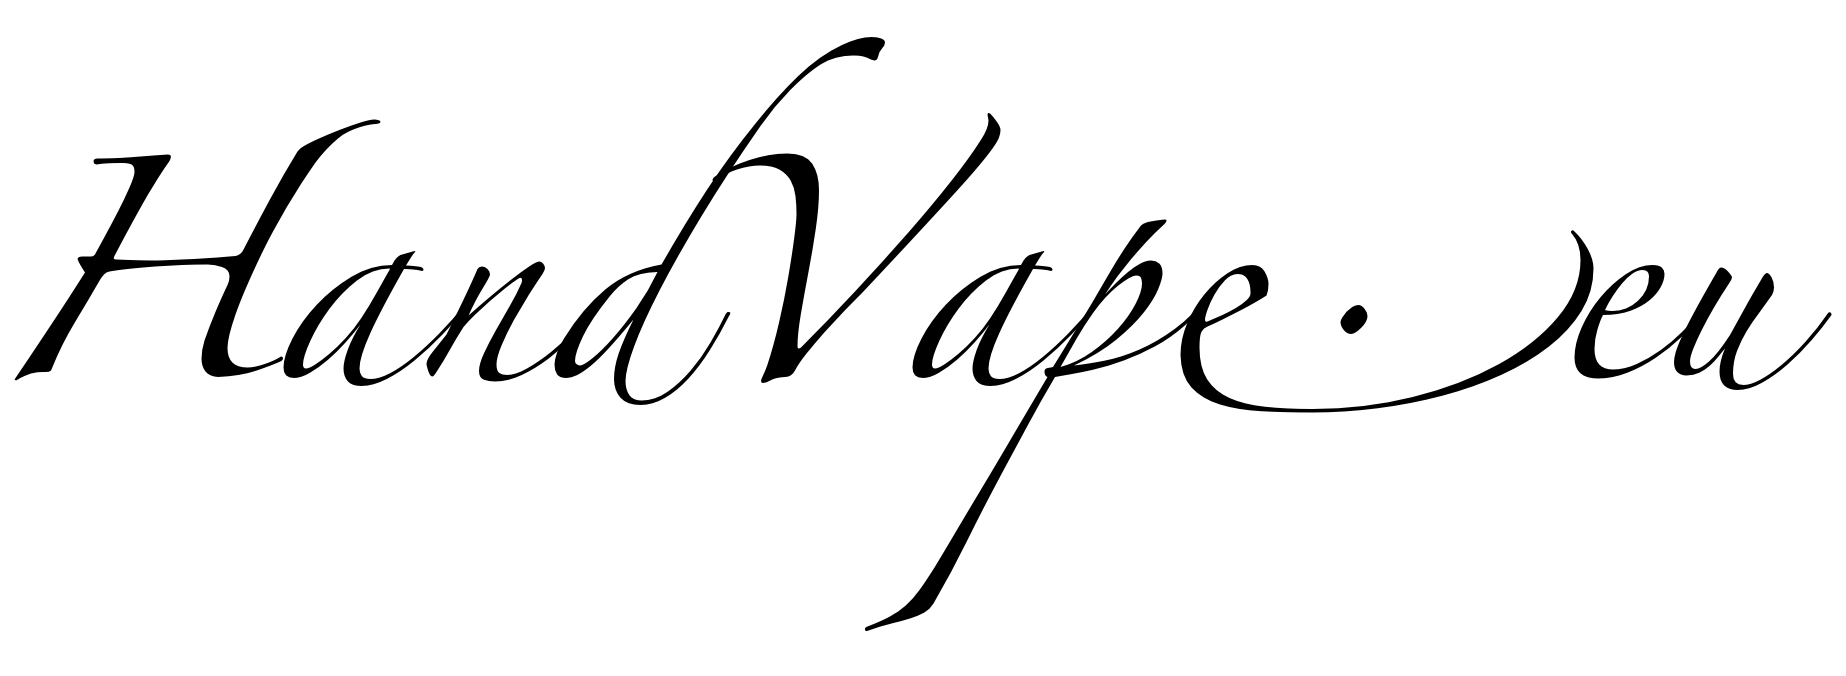 Everything you need for Vaping!